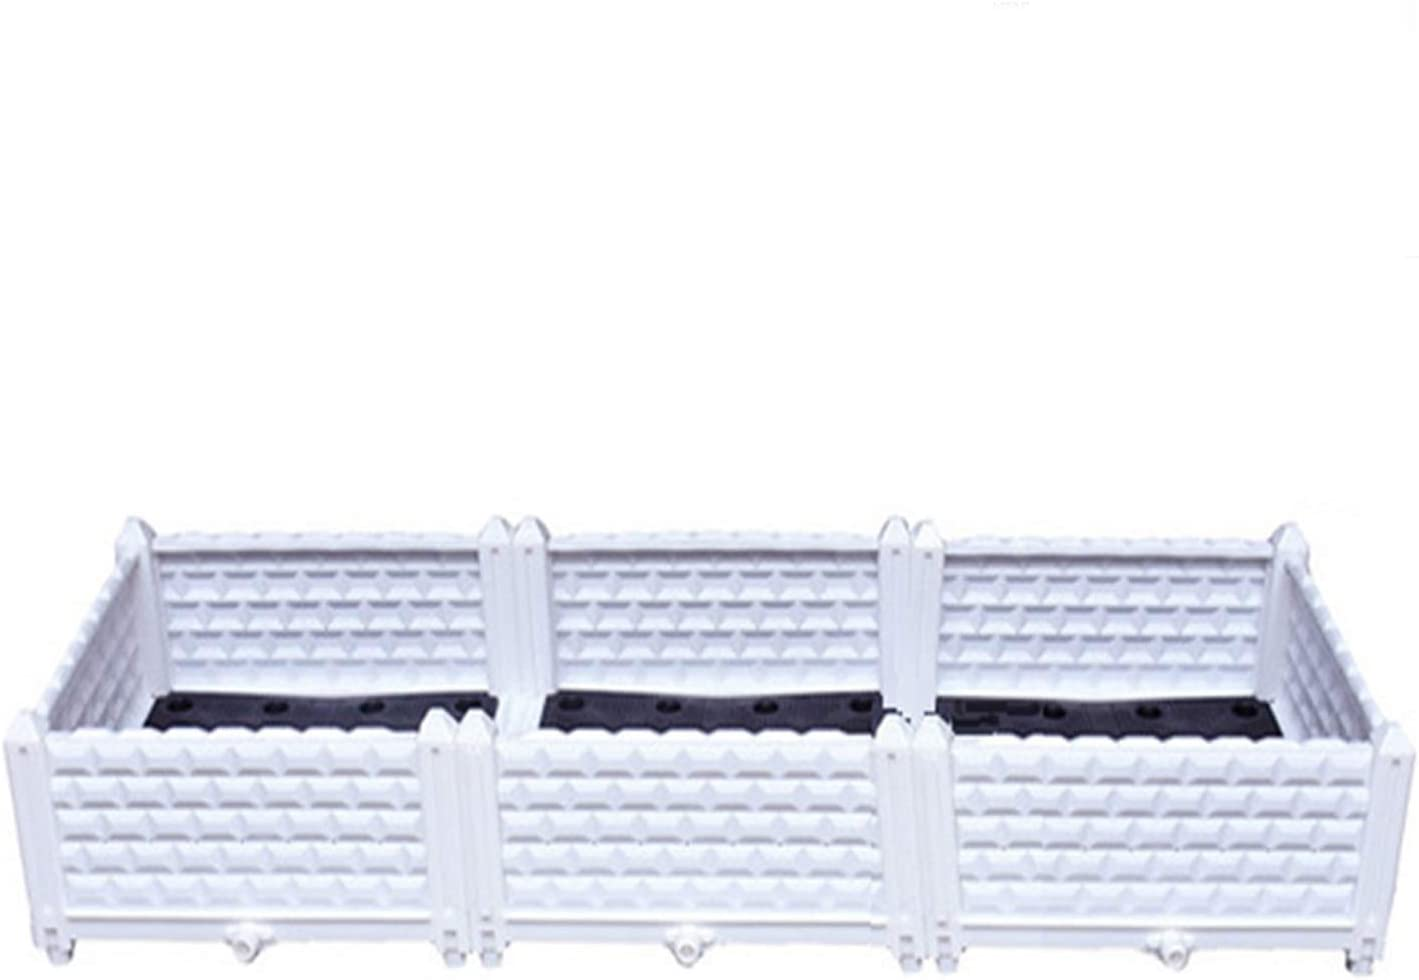 Geeaoo Raised Garden Bed 47.2 x 15.7 x 8.6 inch Plastic Garden Box 3 Plastic Plant Containers Grow Vegetables Herbs Plants Flowers Indoor Outdoor White